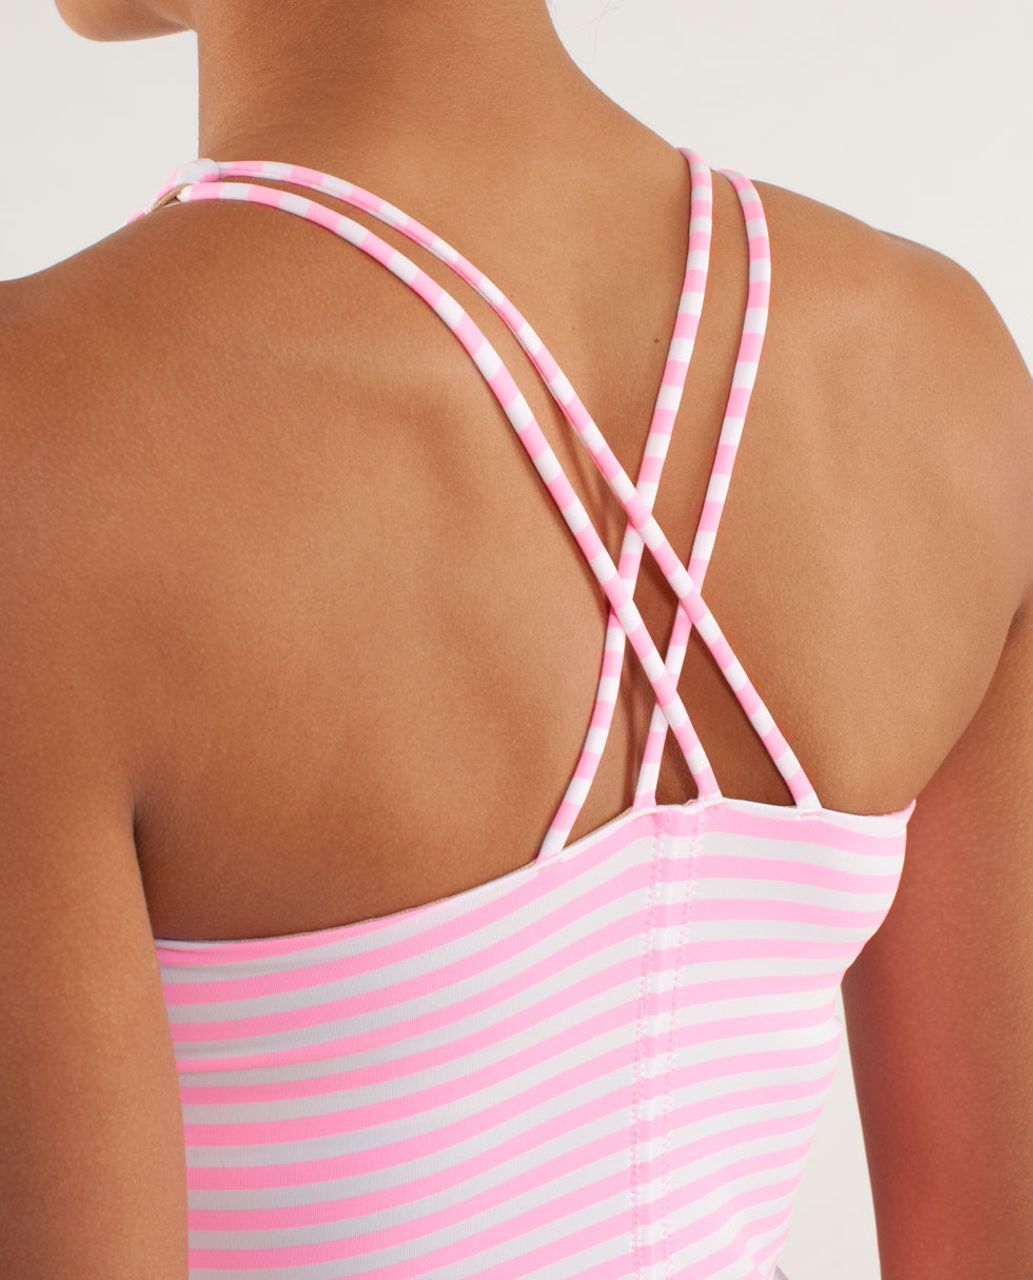 Lululemon Free To Be Tank - Classic Stripe White Pink Shell